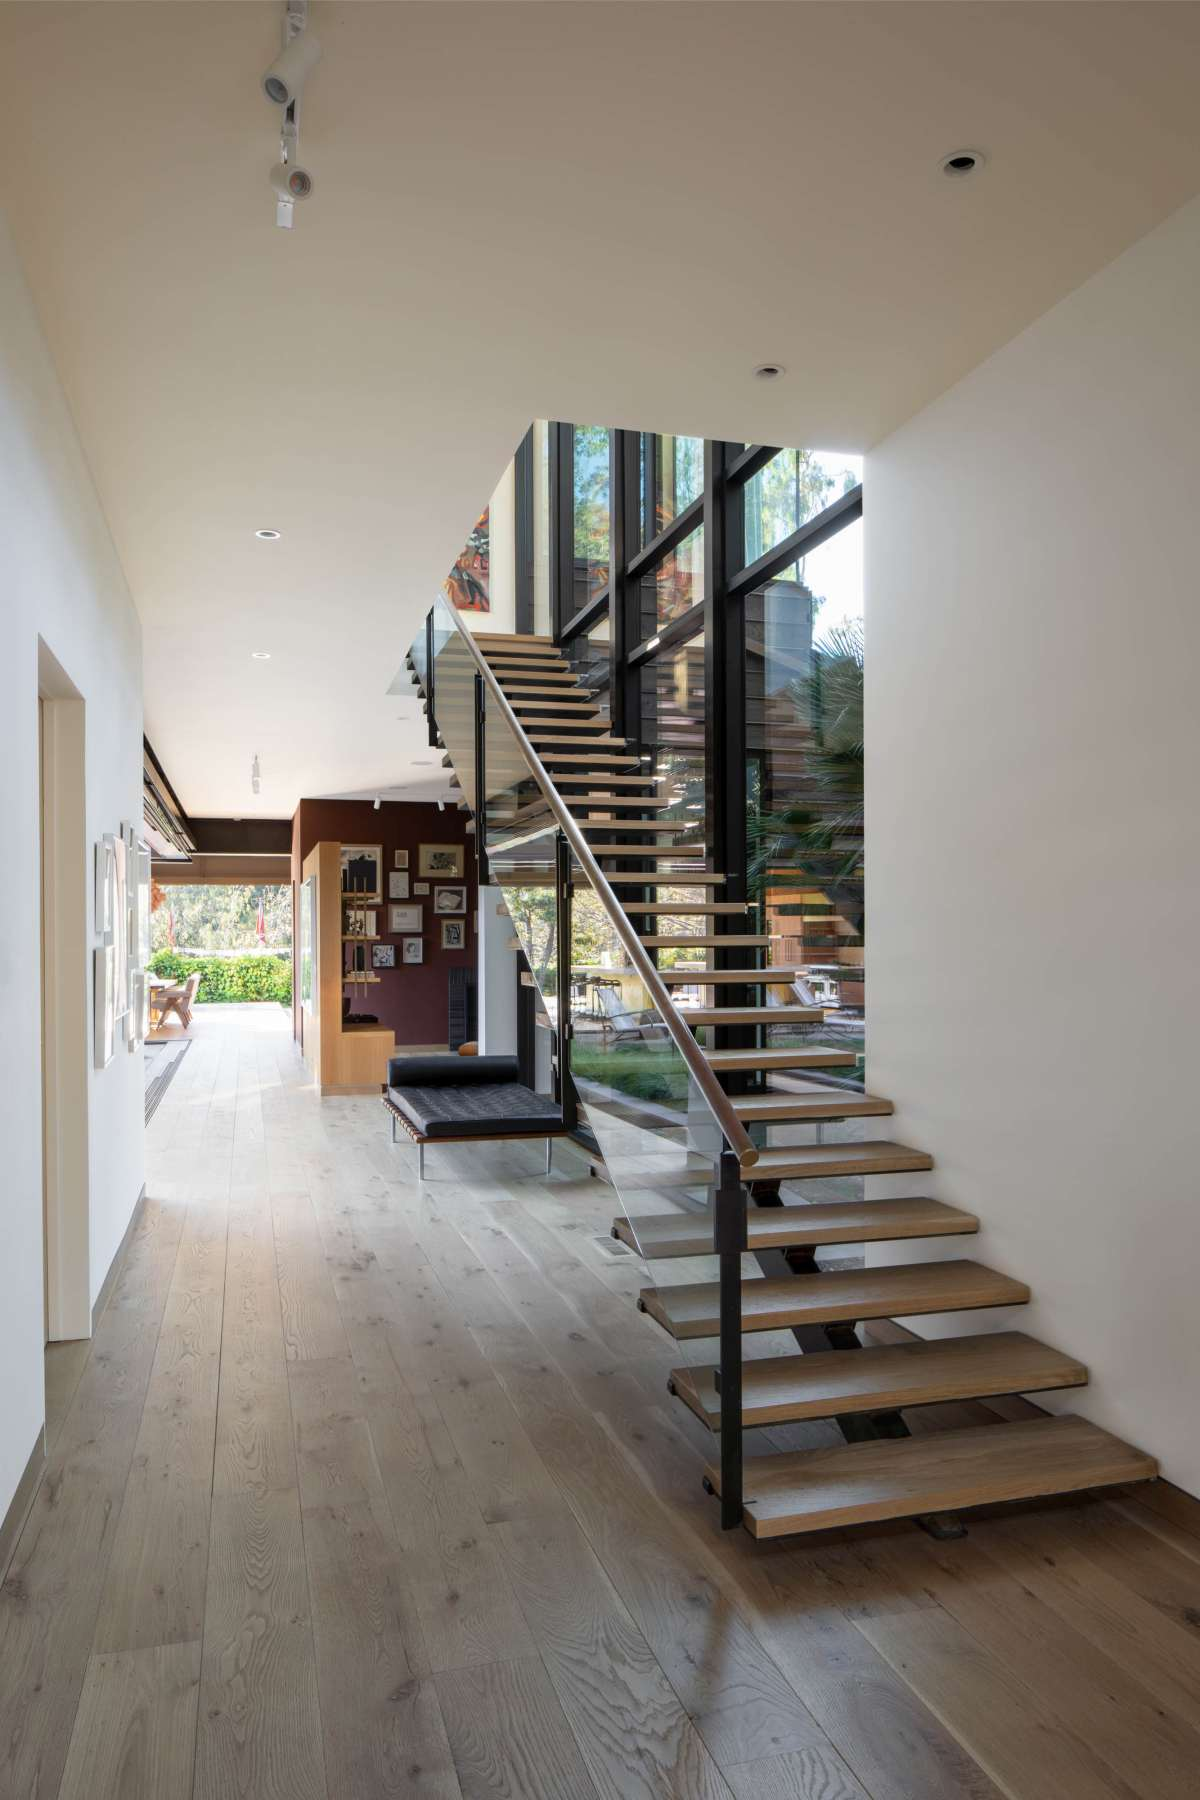 The interior is very open and peaceful, with lots of large windows and glazed walls